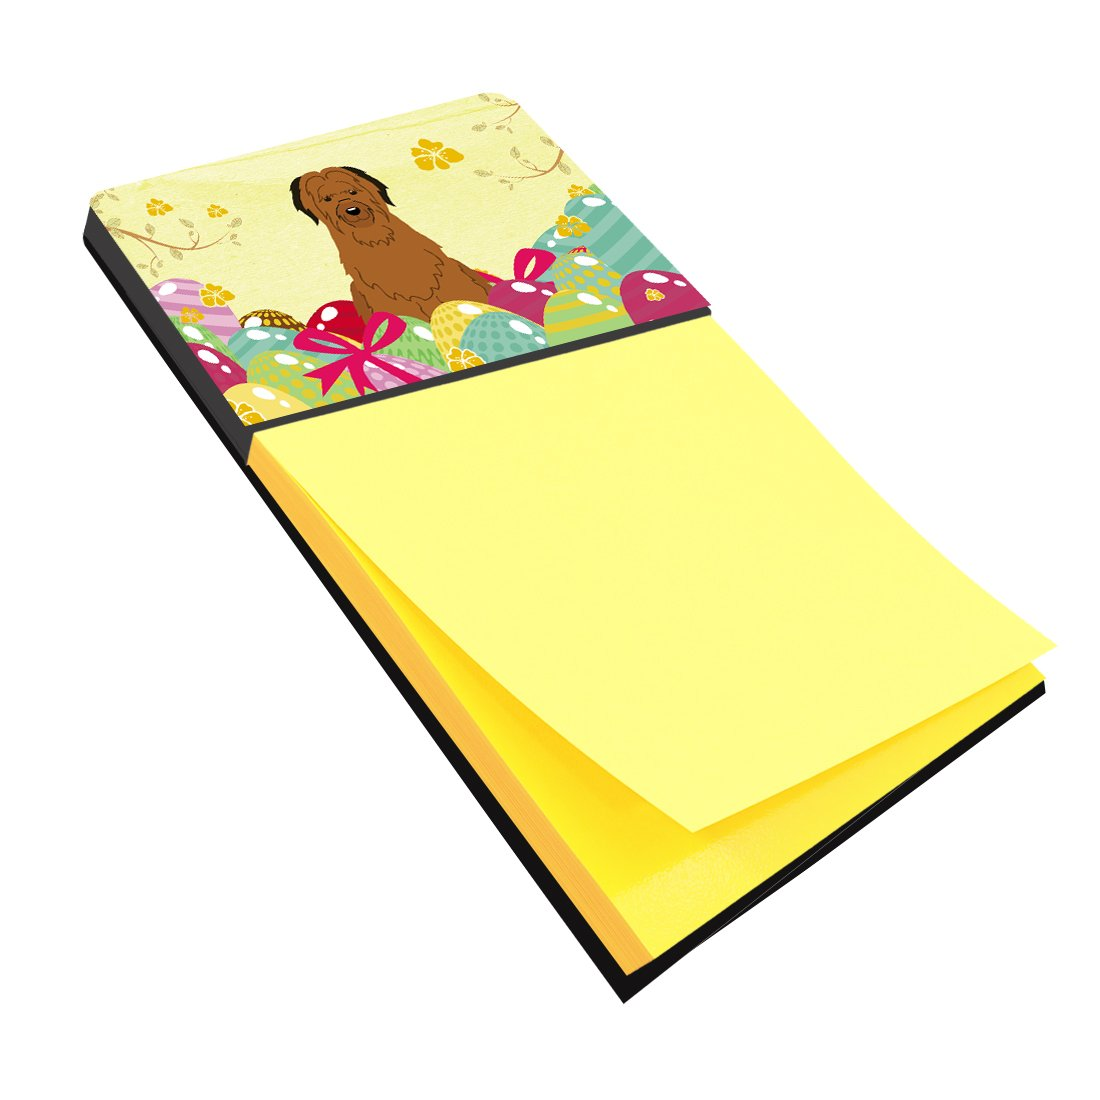 Self Stick Note Pad Holders Home Kitchen Multicolor Carolines Treasures Bb6082sn Easter Eggs Briard Brown Sticky Note Holder Large